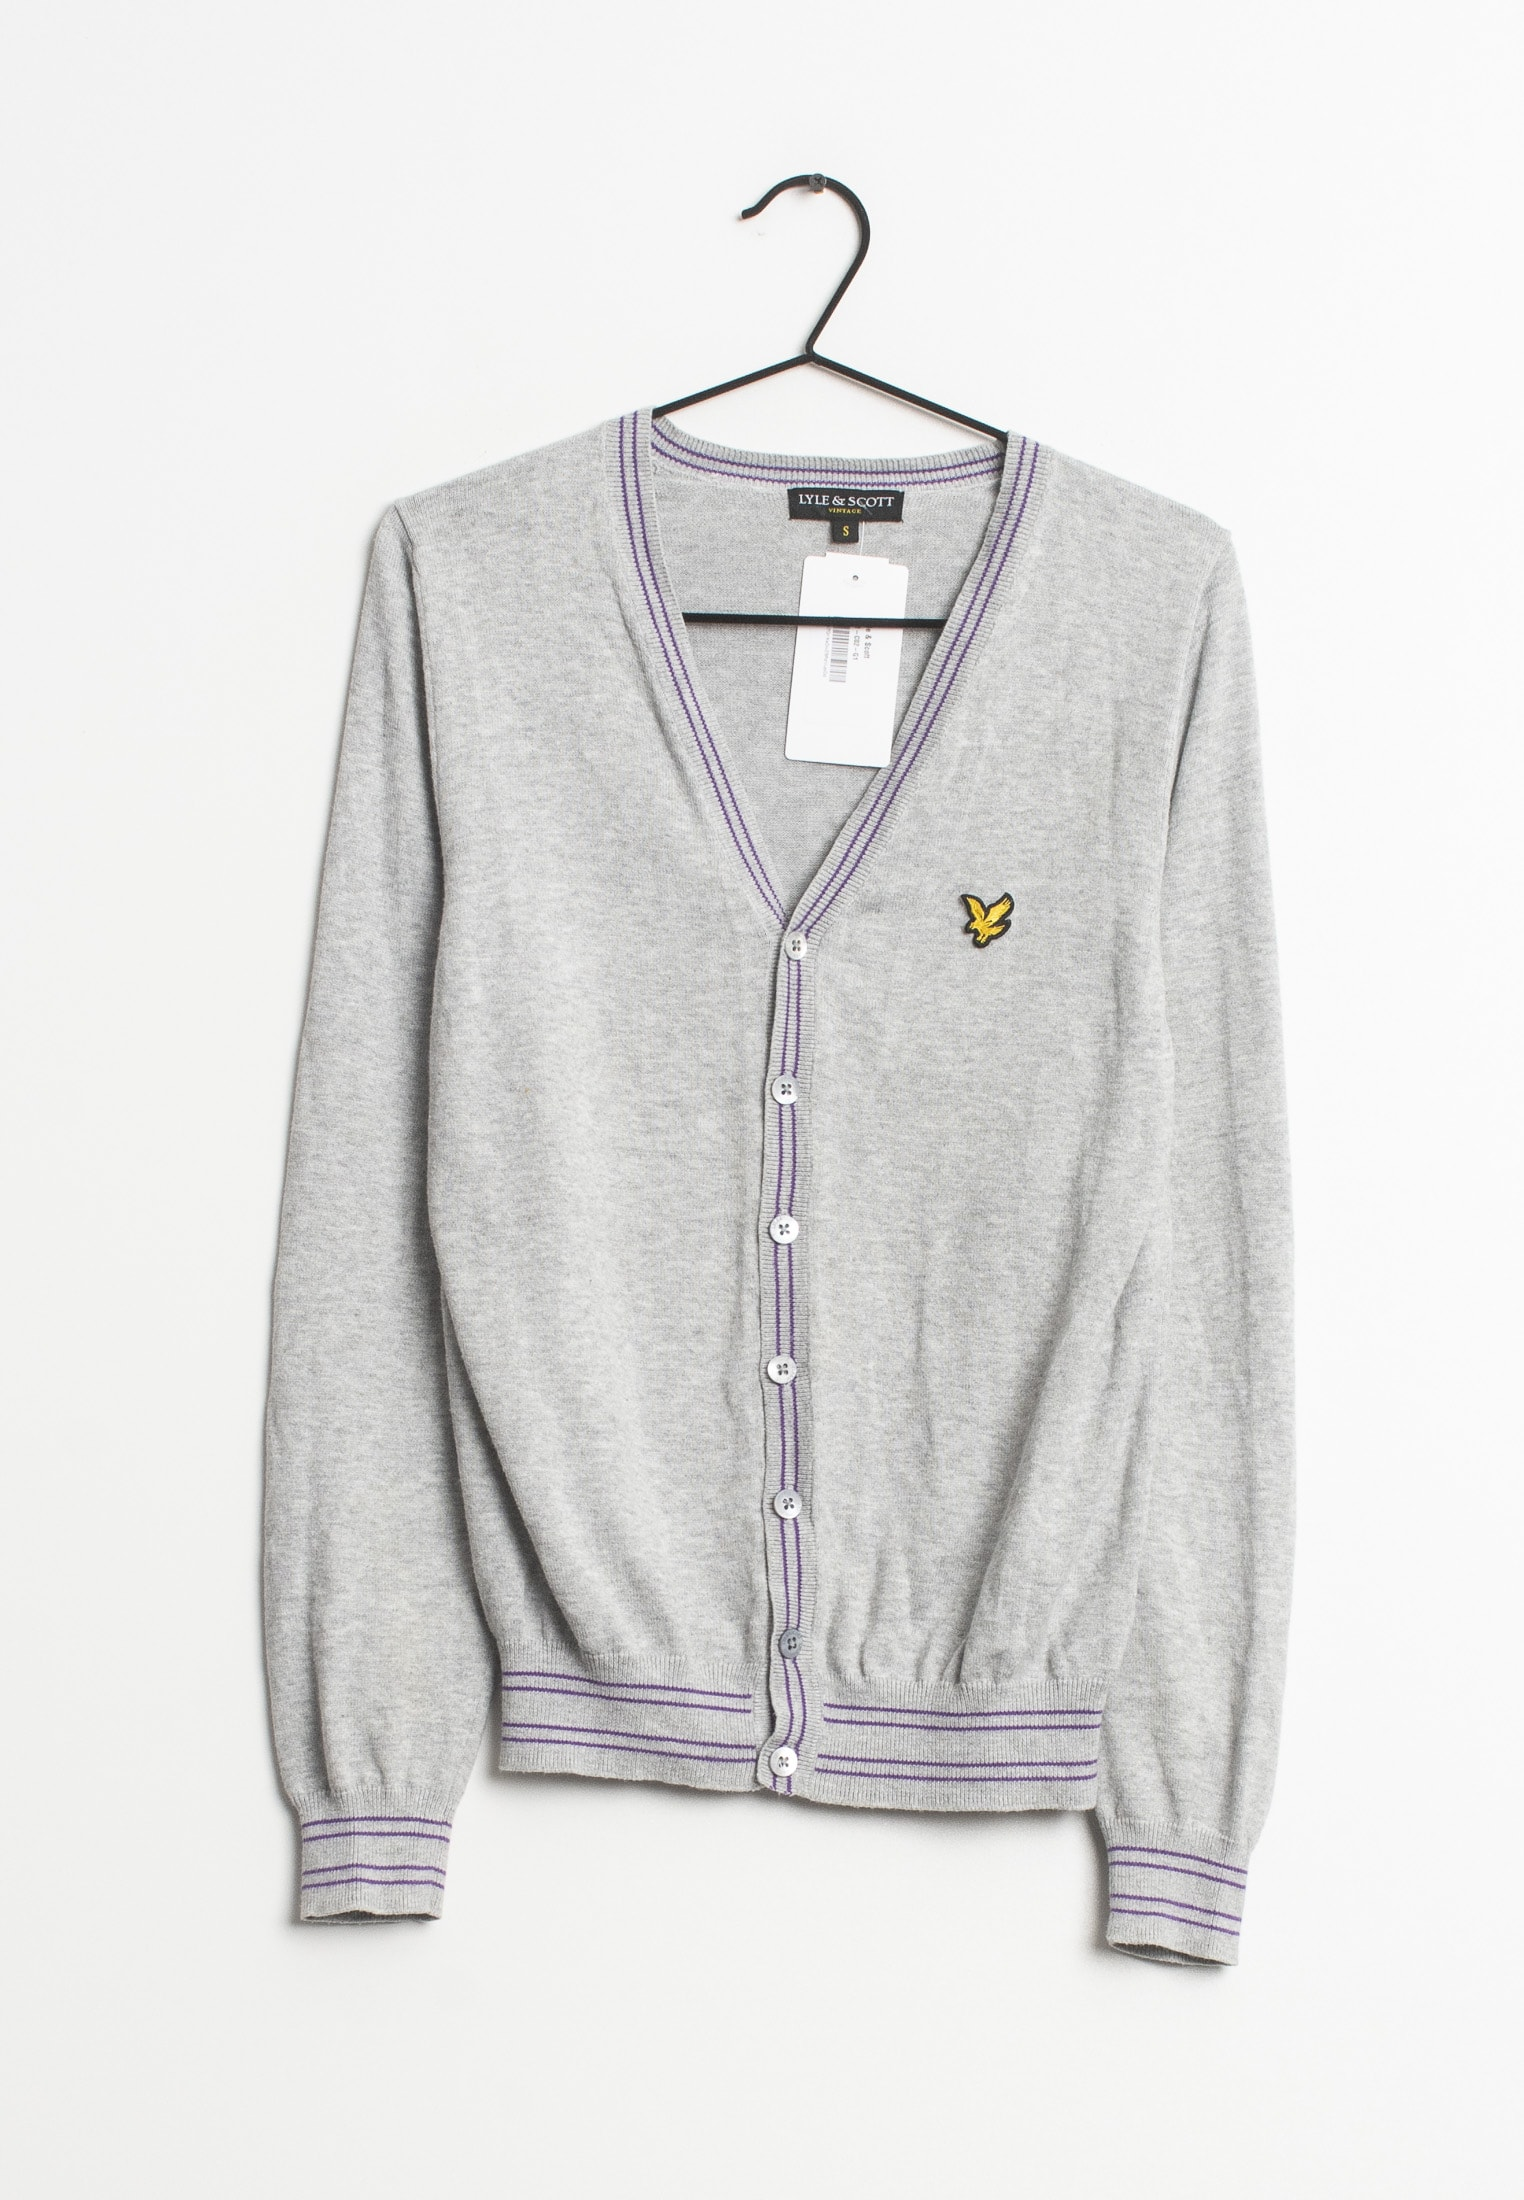 Lyle & Scott Strickjacke Grau Gr.S